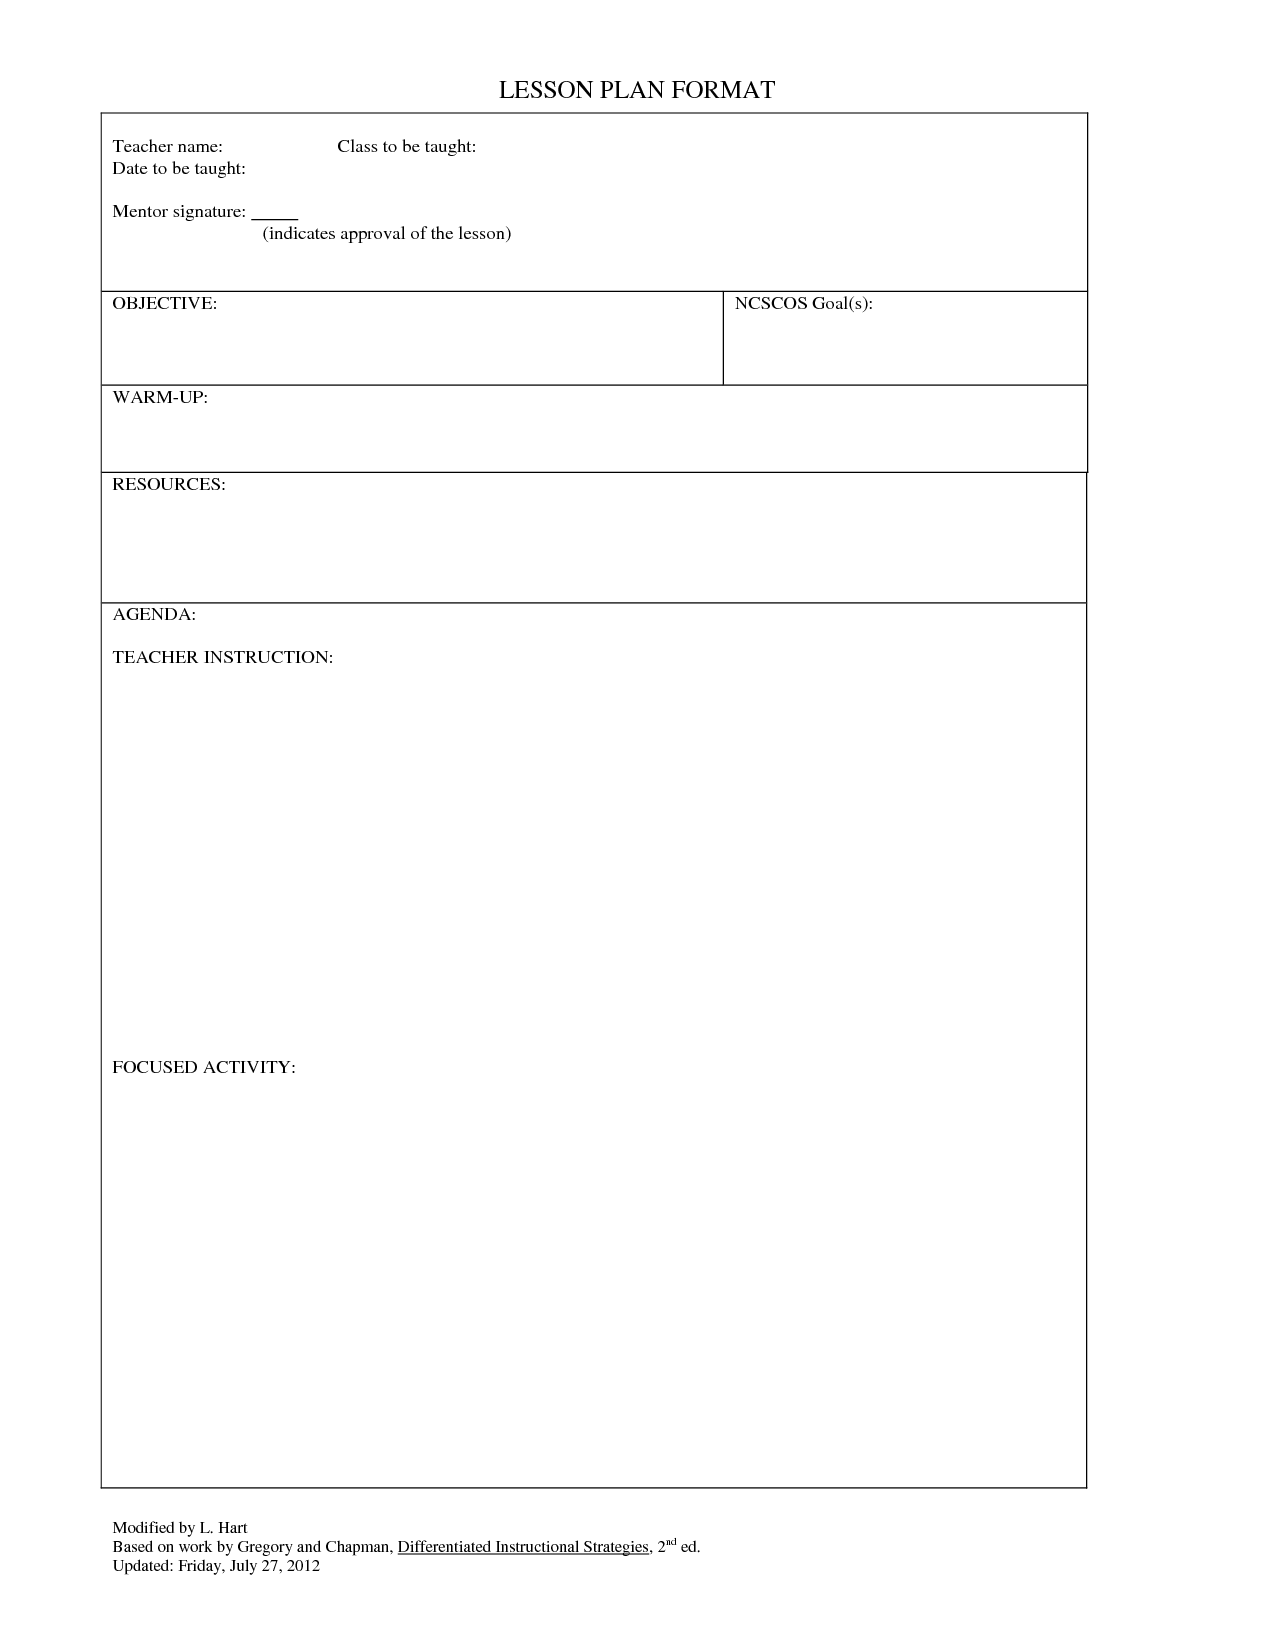 Blank Lesson Plans For Teachers Lesson Plan For Gp Blank - Blank lesson plan template